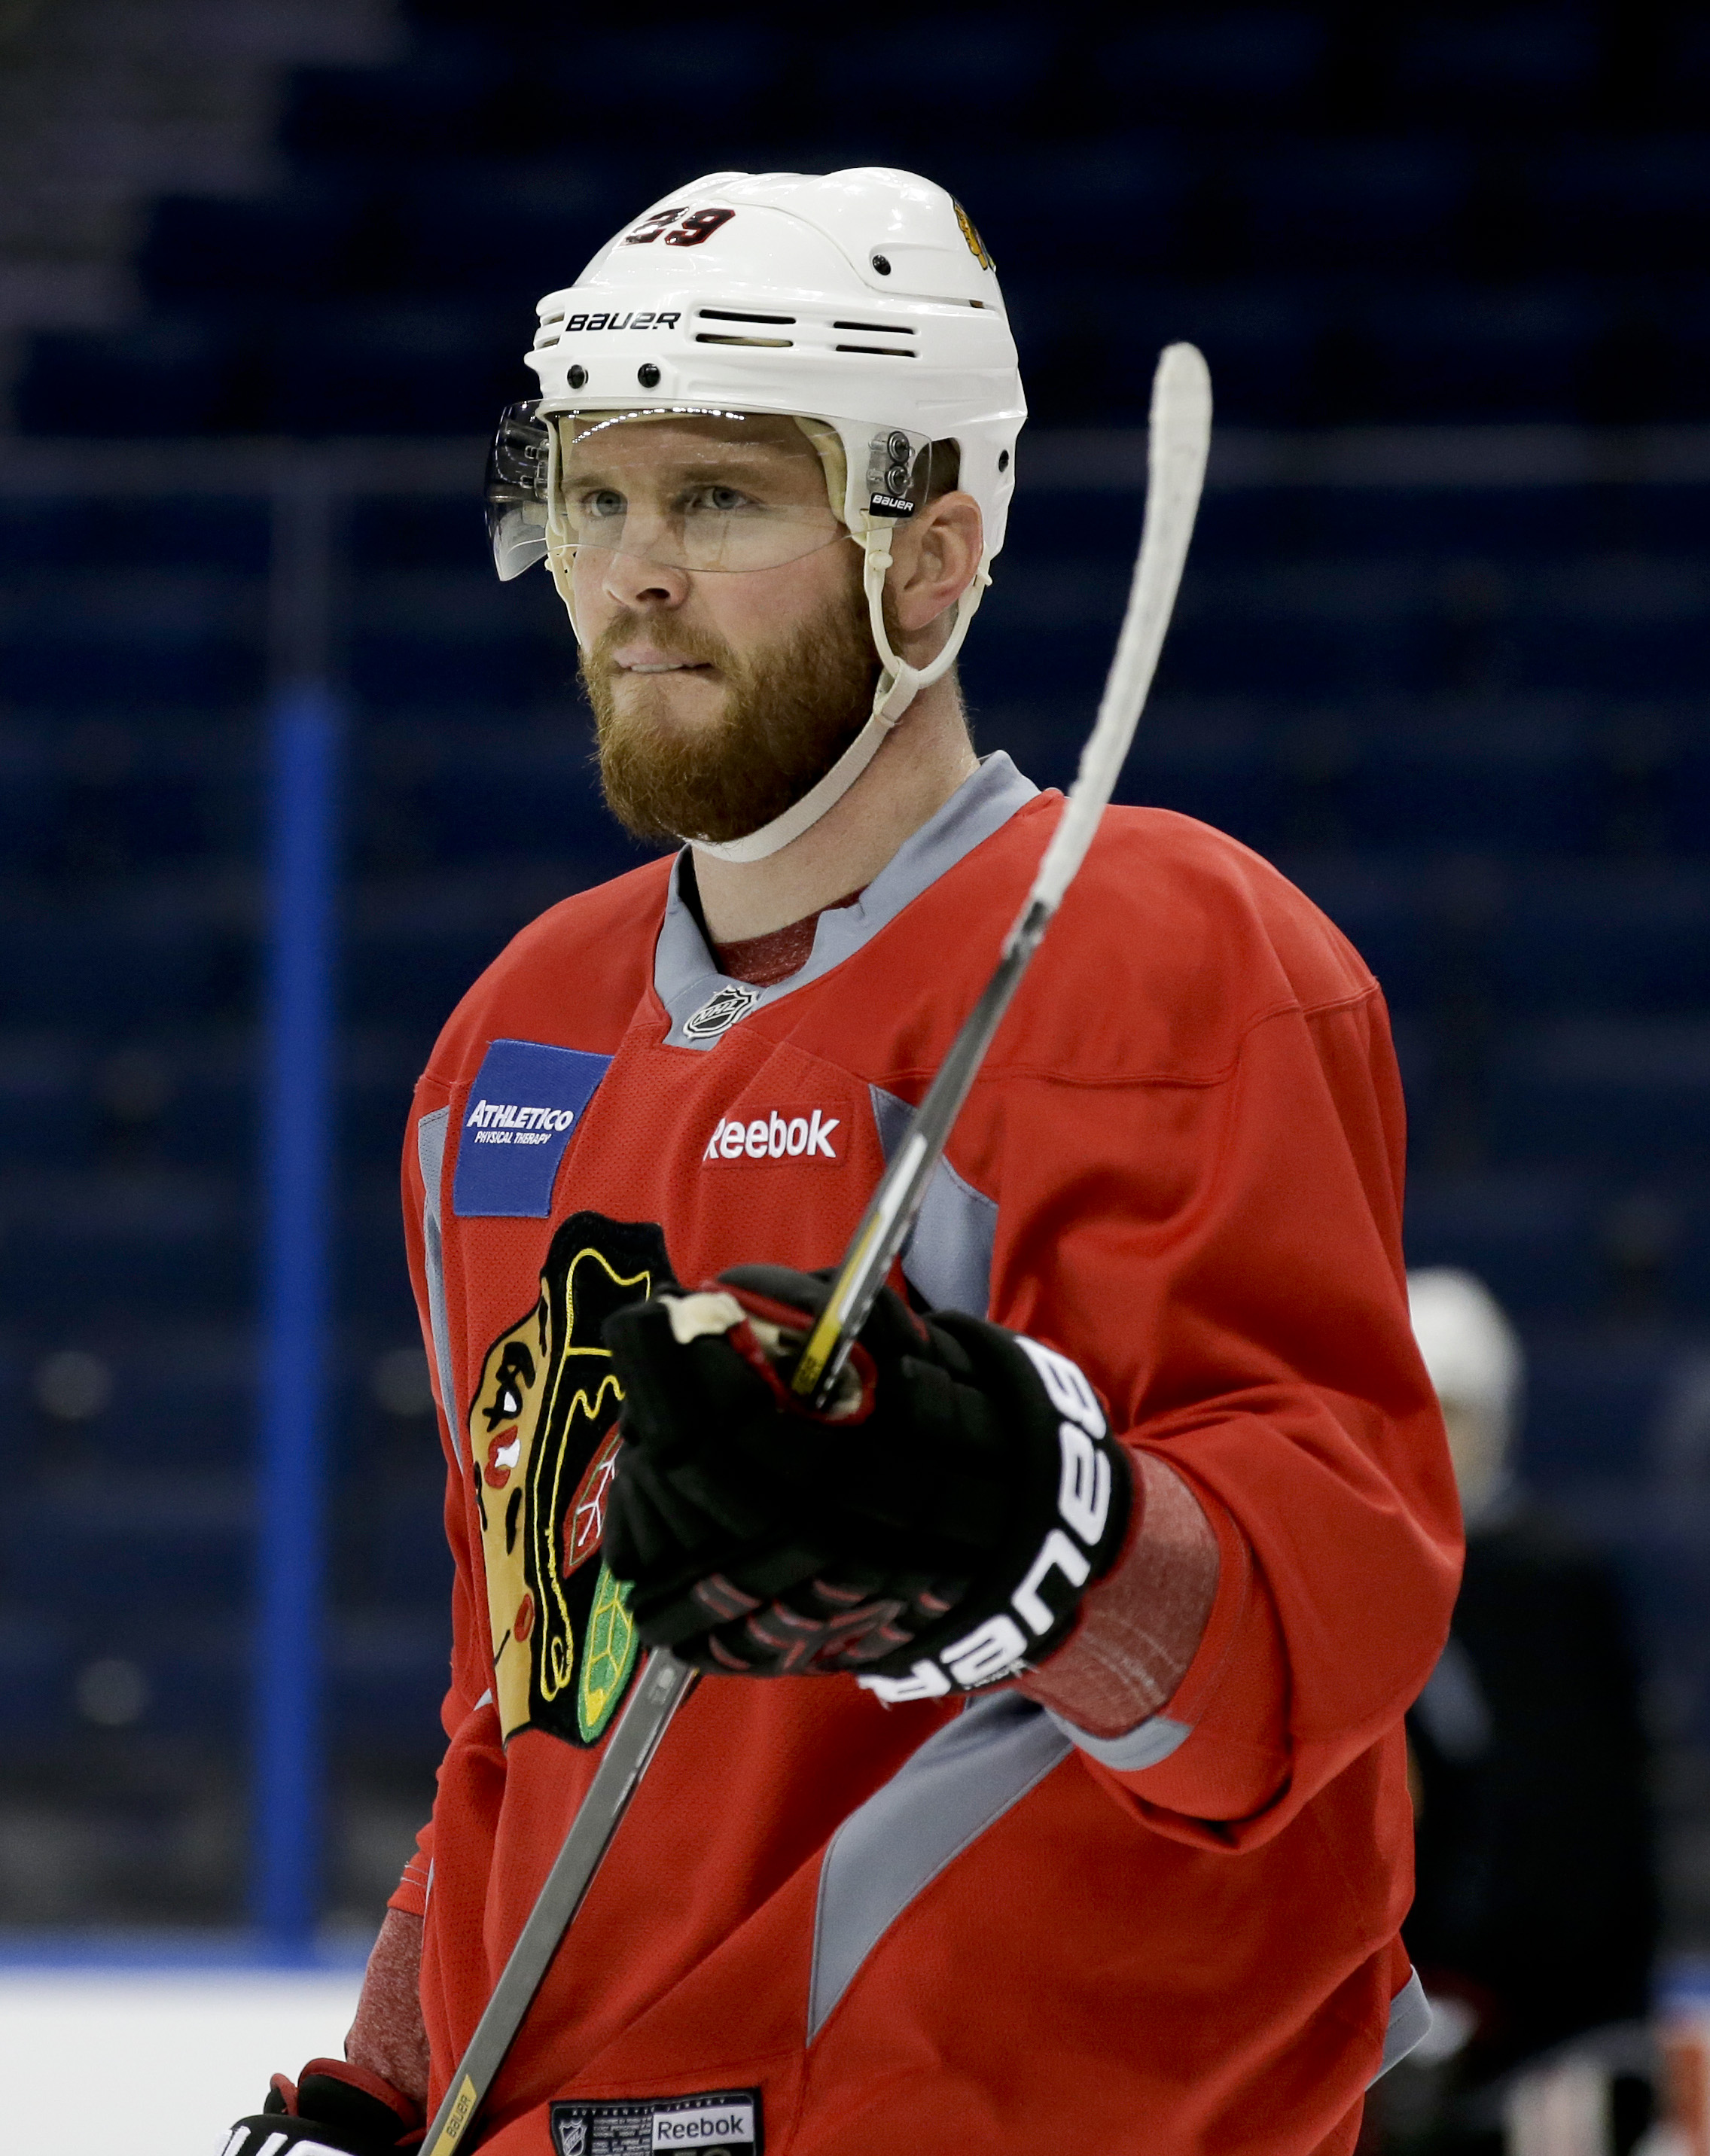 Chicago Blackhawks left wing Bryan Bickell skates during practice at the NHL hockey Stanley Cup Final, Friday, June 5, 2015, in Tampa, Fla. The Chicago Blackhawks lead the best-of-seven games series against the Tampa Bay Lightning 1-0. Game 2 is scheduled